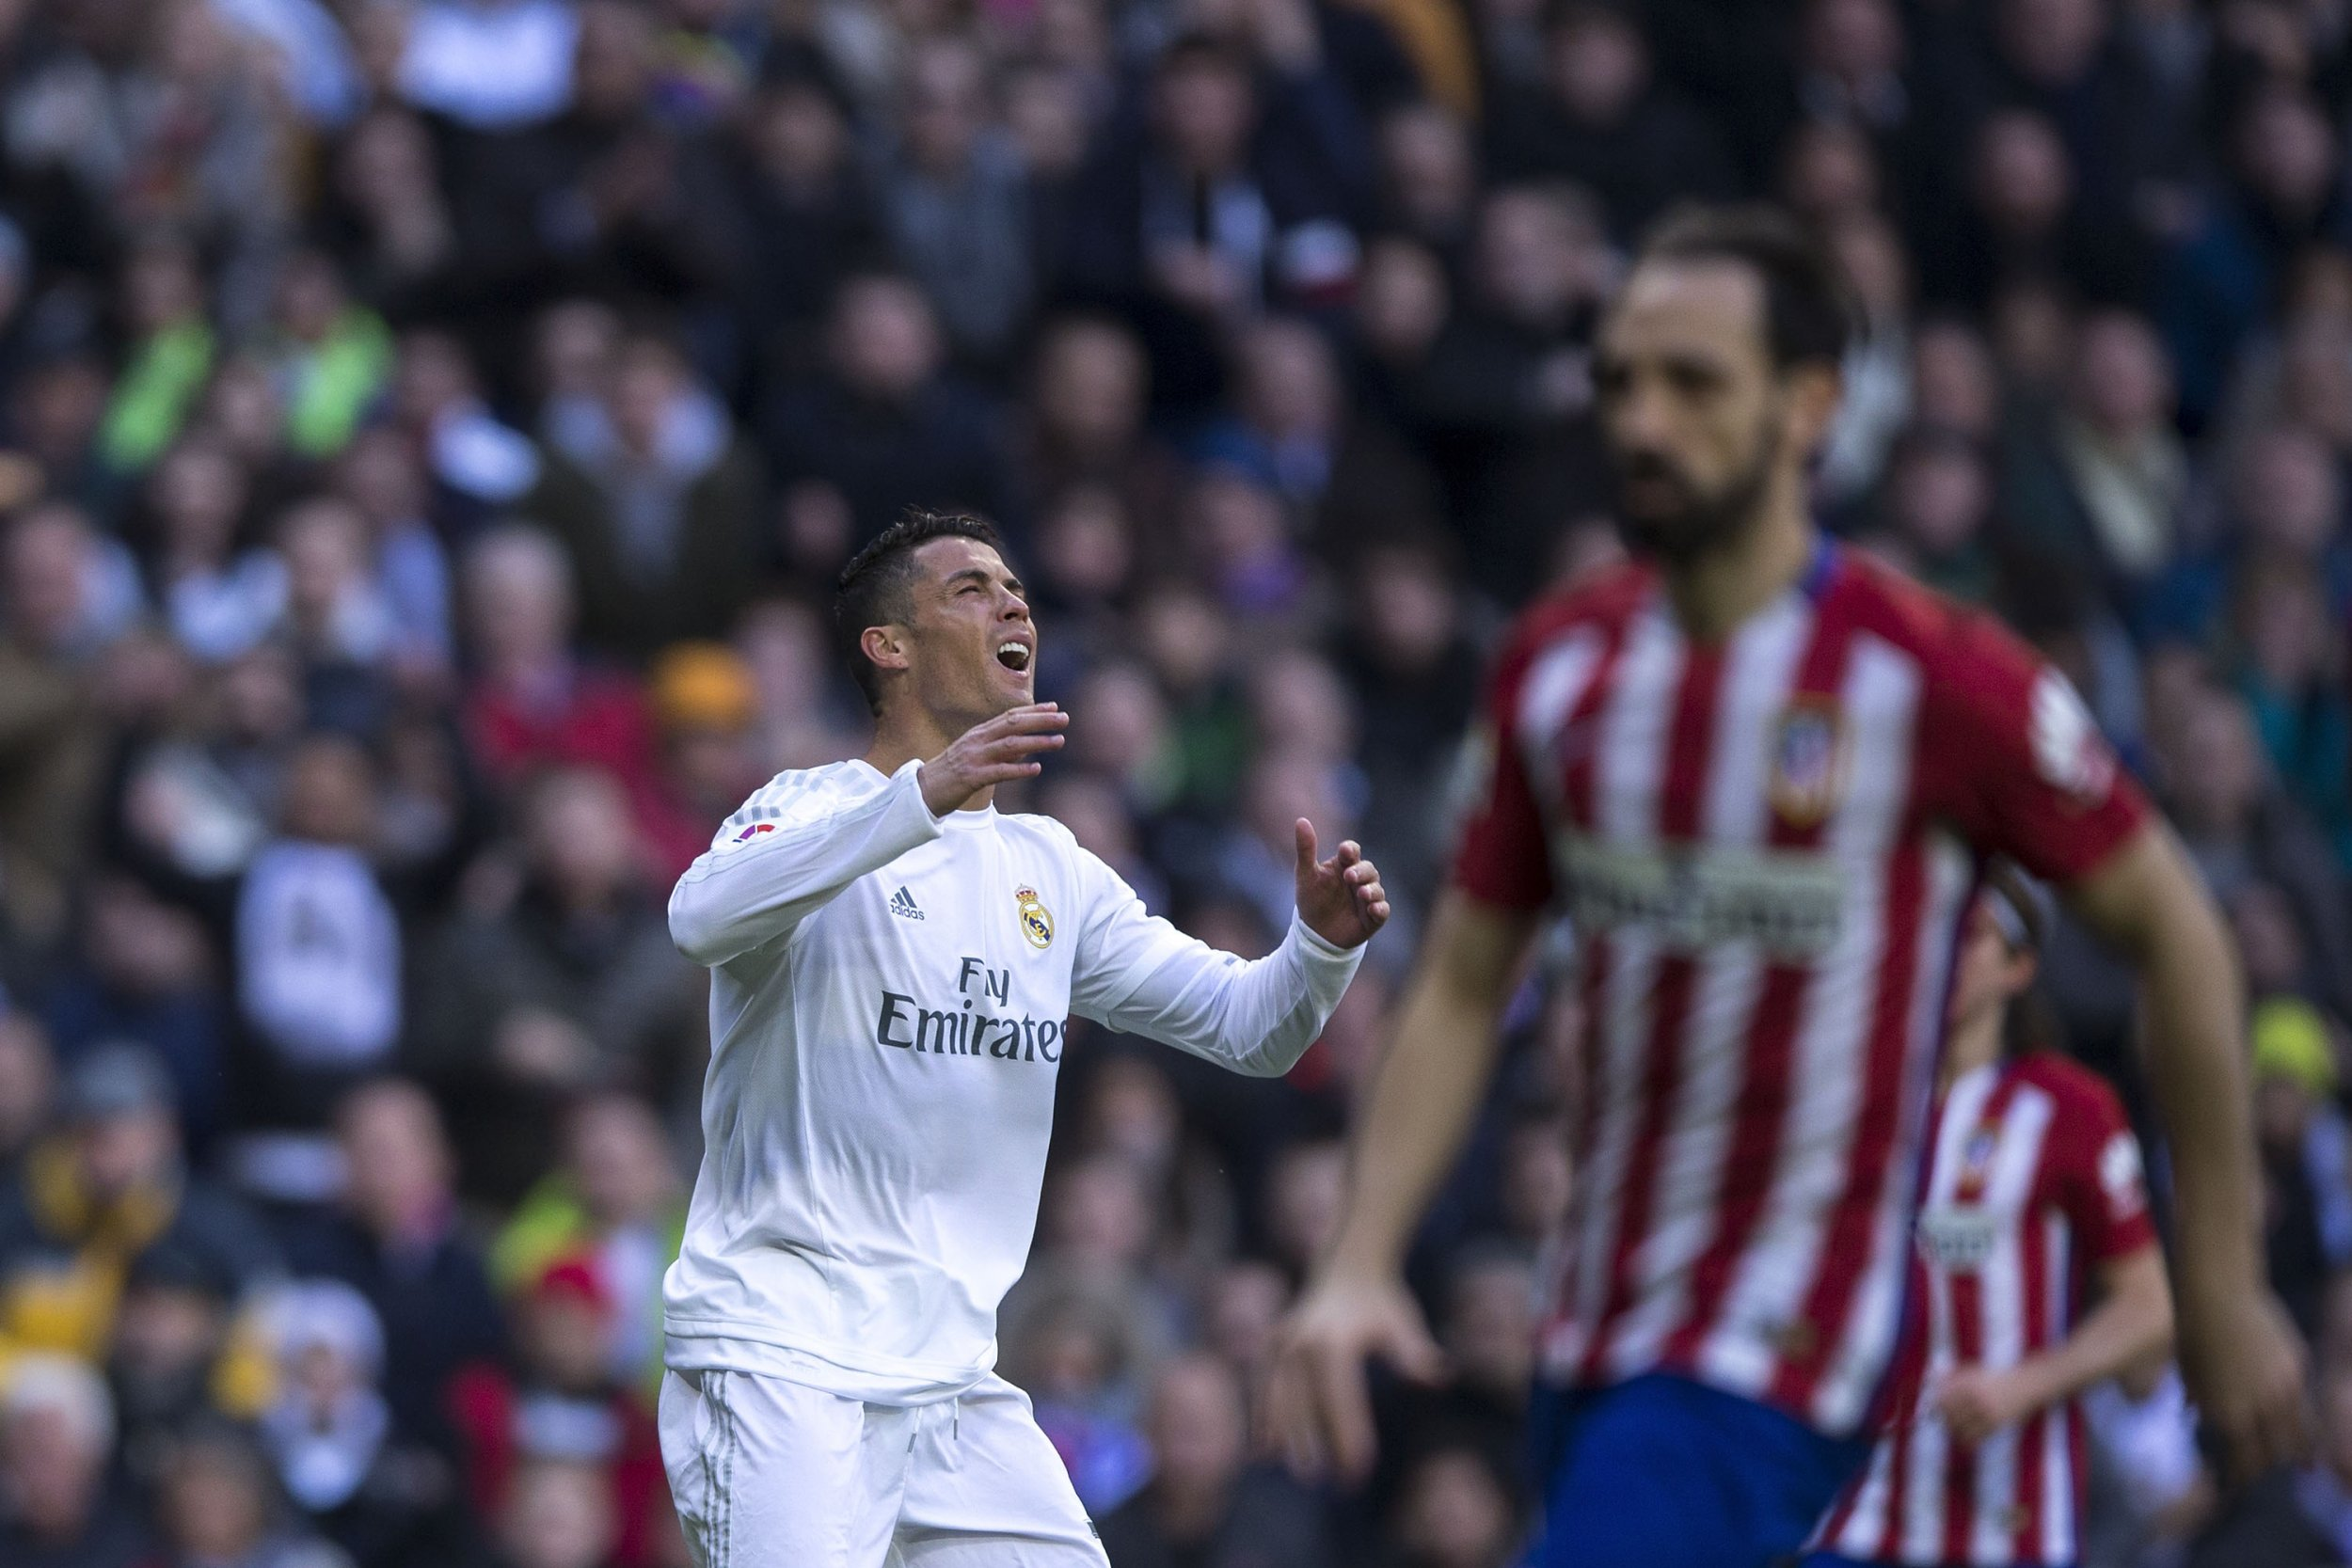 Cristiano Ronaldo and Real Madrid lost on Saturday against Atletico Madrid.